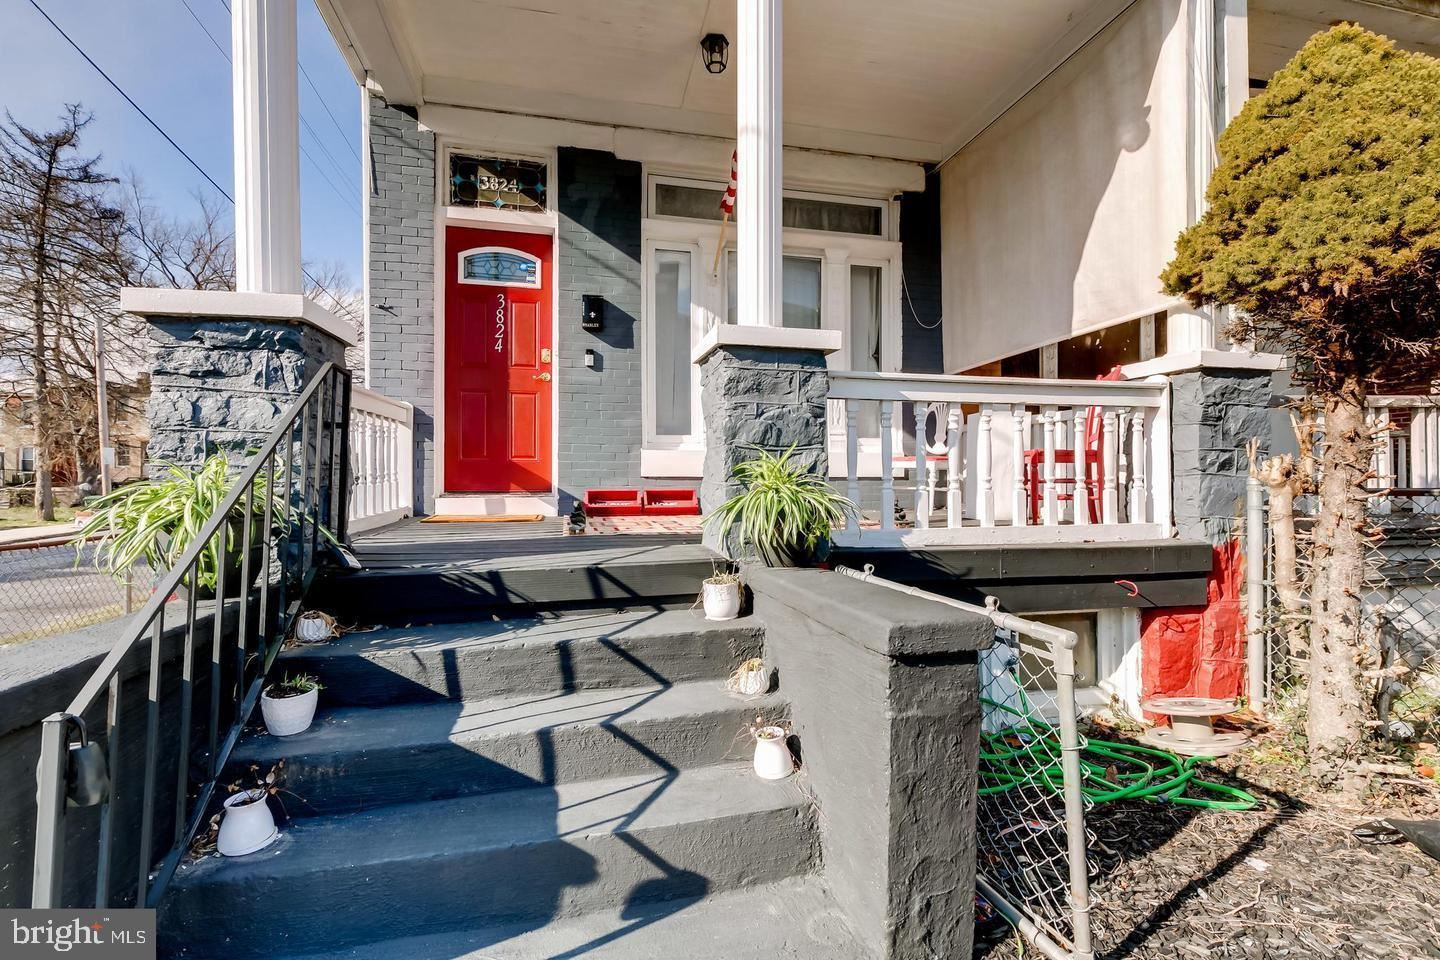 3824 FAIRVIEW AVE, Baltimore, MD 21216 - MLS#: MDBA549992